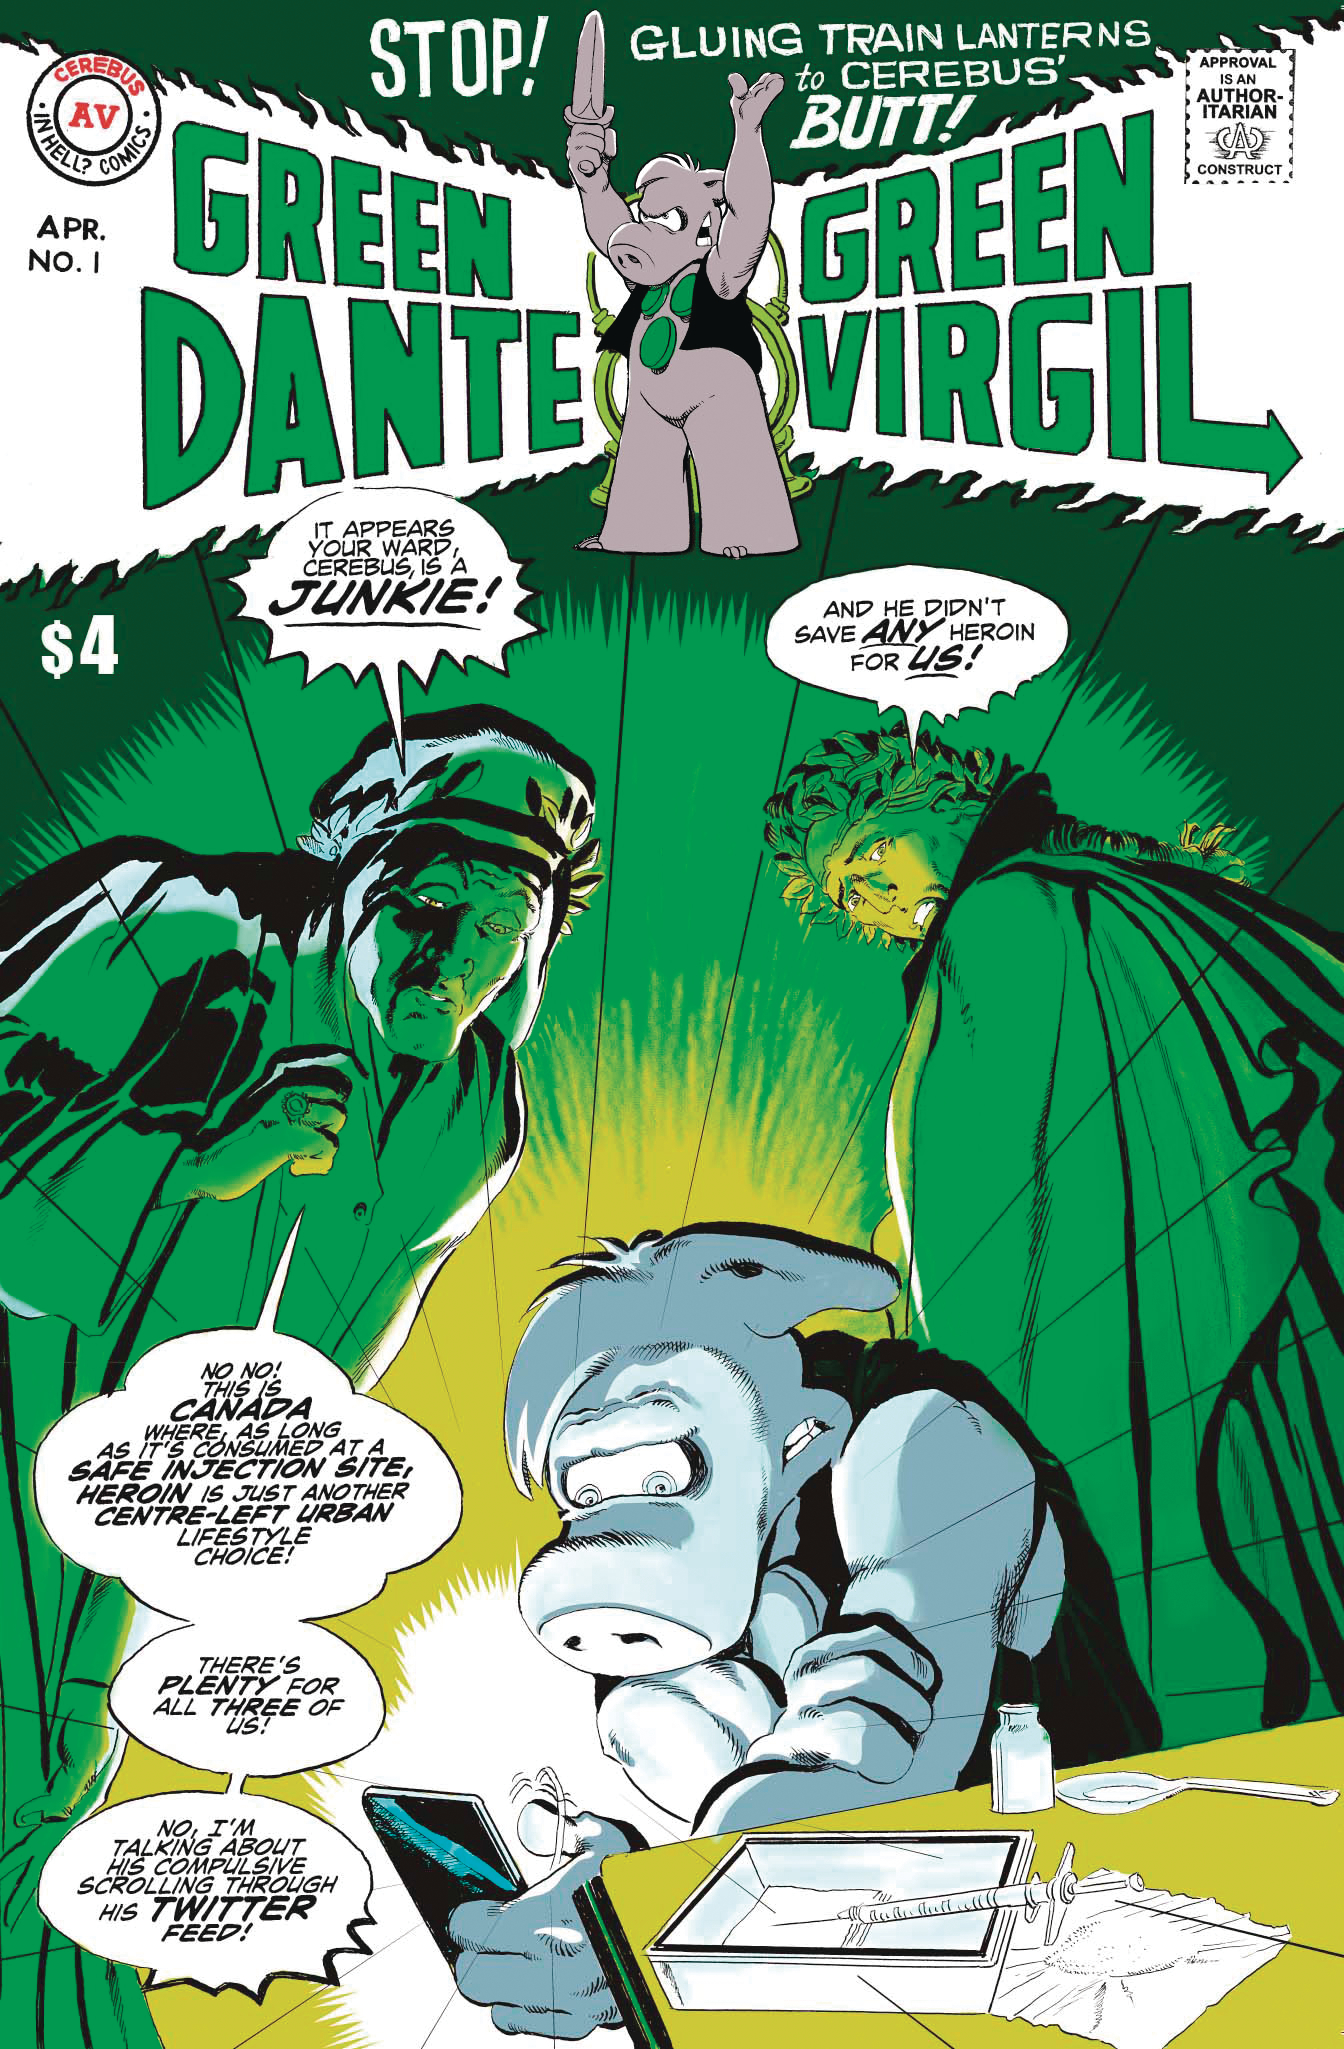 GREEN DANTE GREEN VIRGIL ONE SHOT